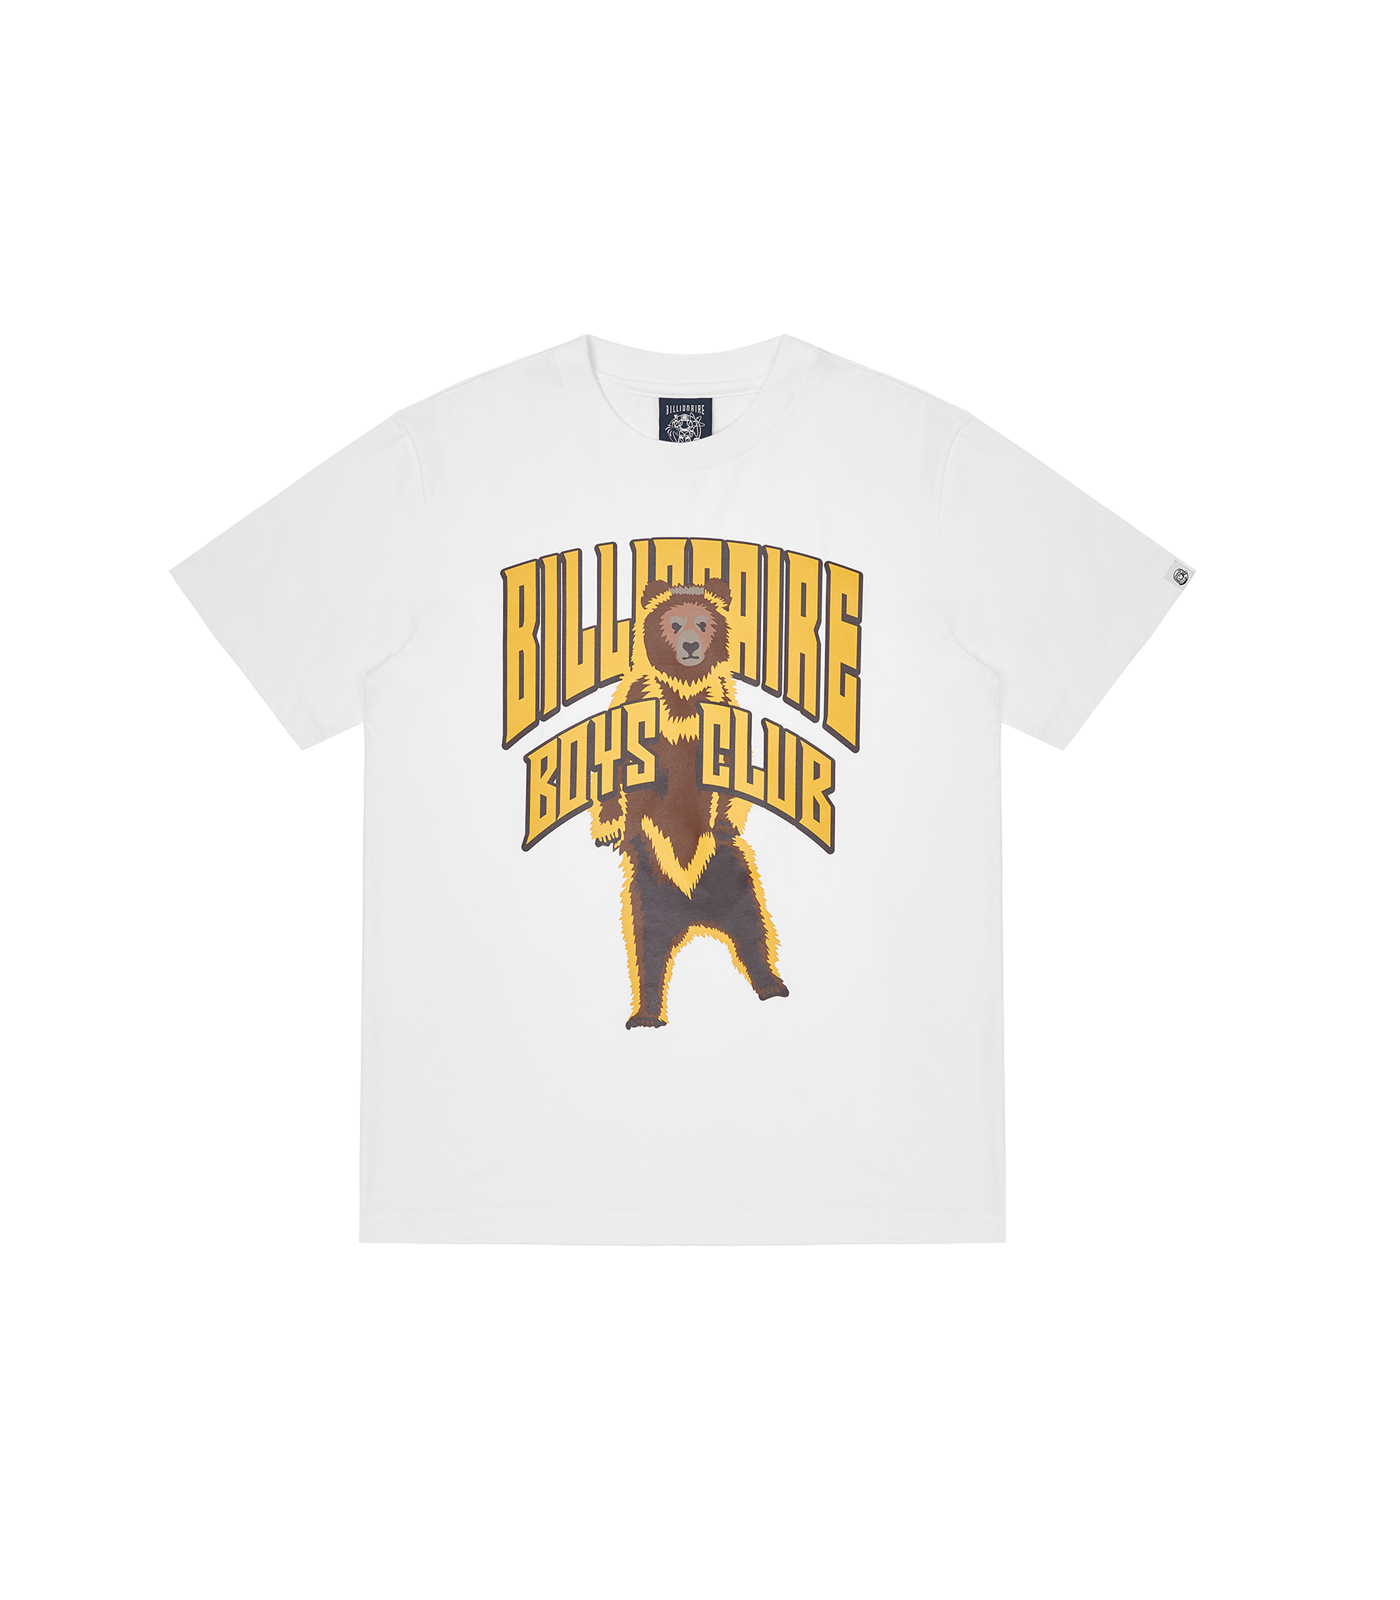 STANDING BEAR LOGO T-SHIRT - WHITE